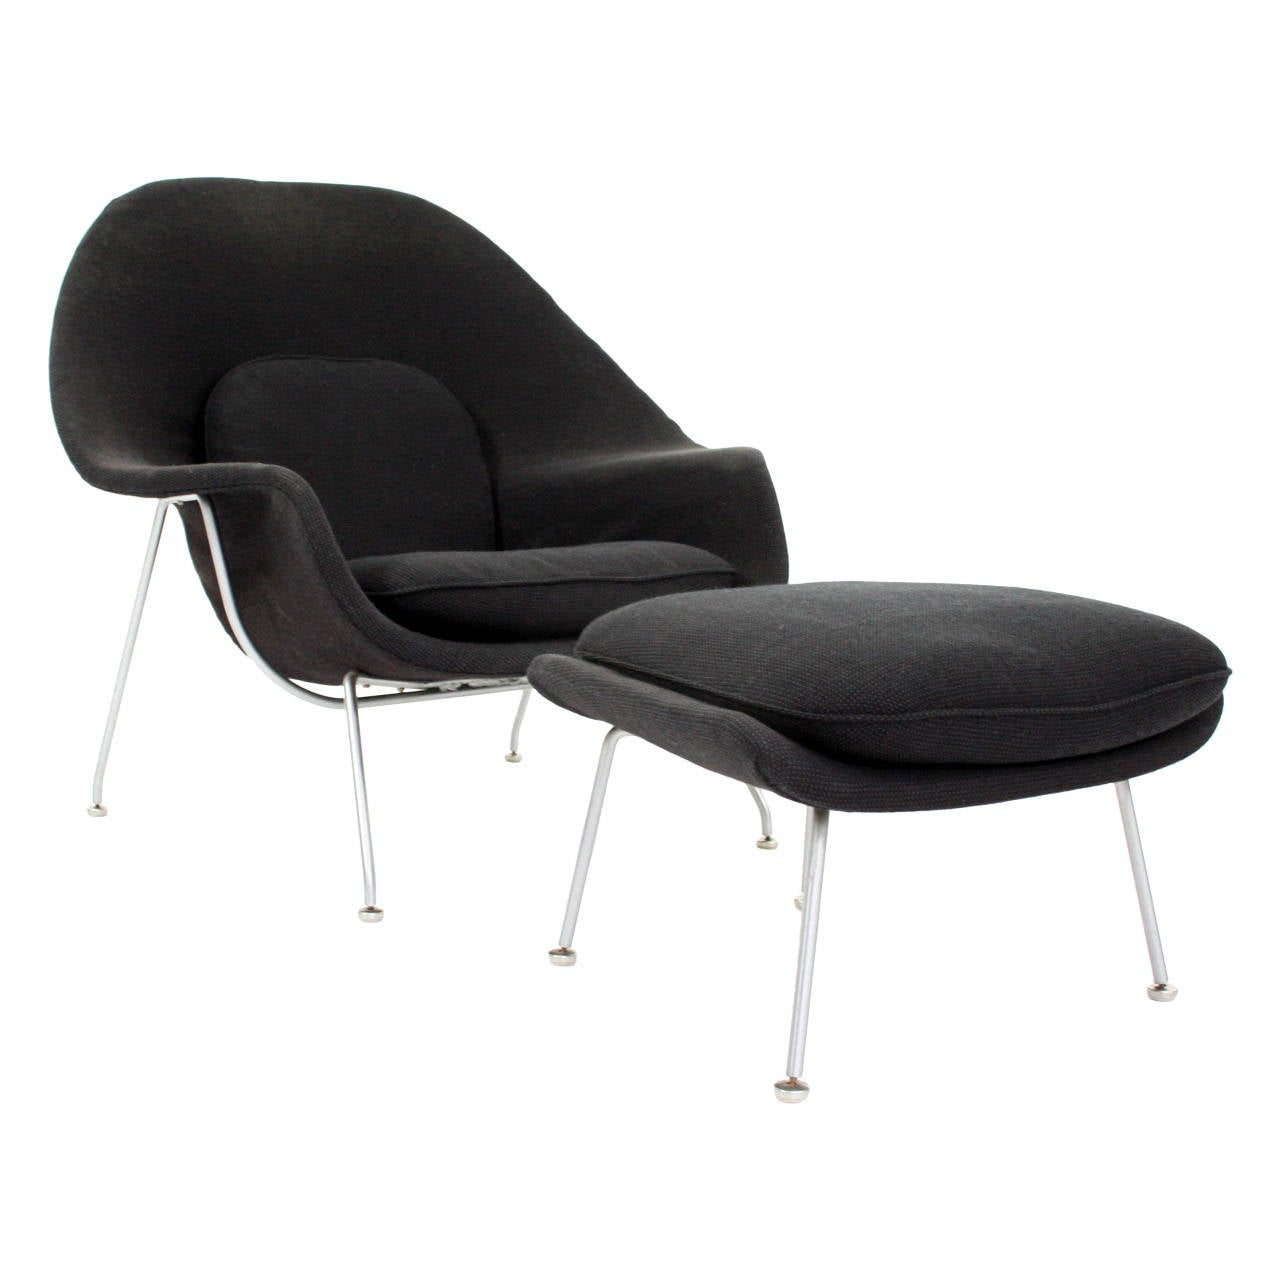 eero saarinen womb chair and ottoman in grey knoll cato fabric at 1stdibs. Black Bedroom Furniture Sets. Home Design Ideas